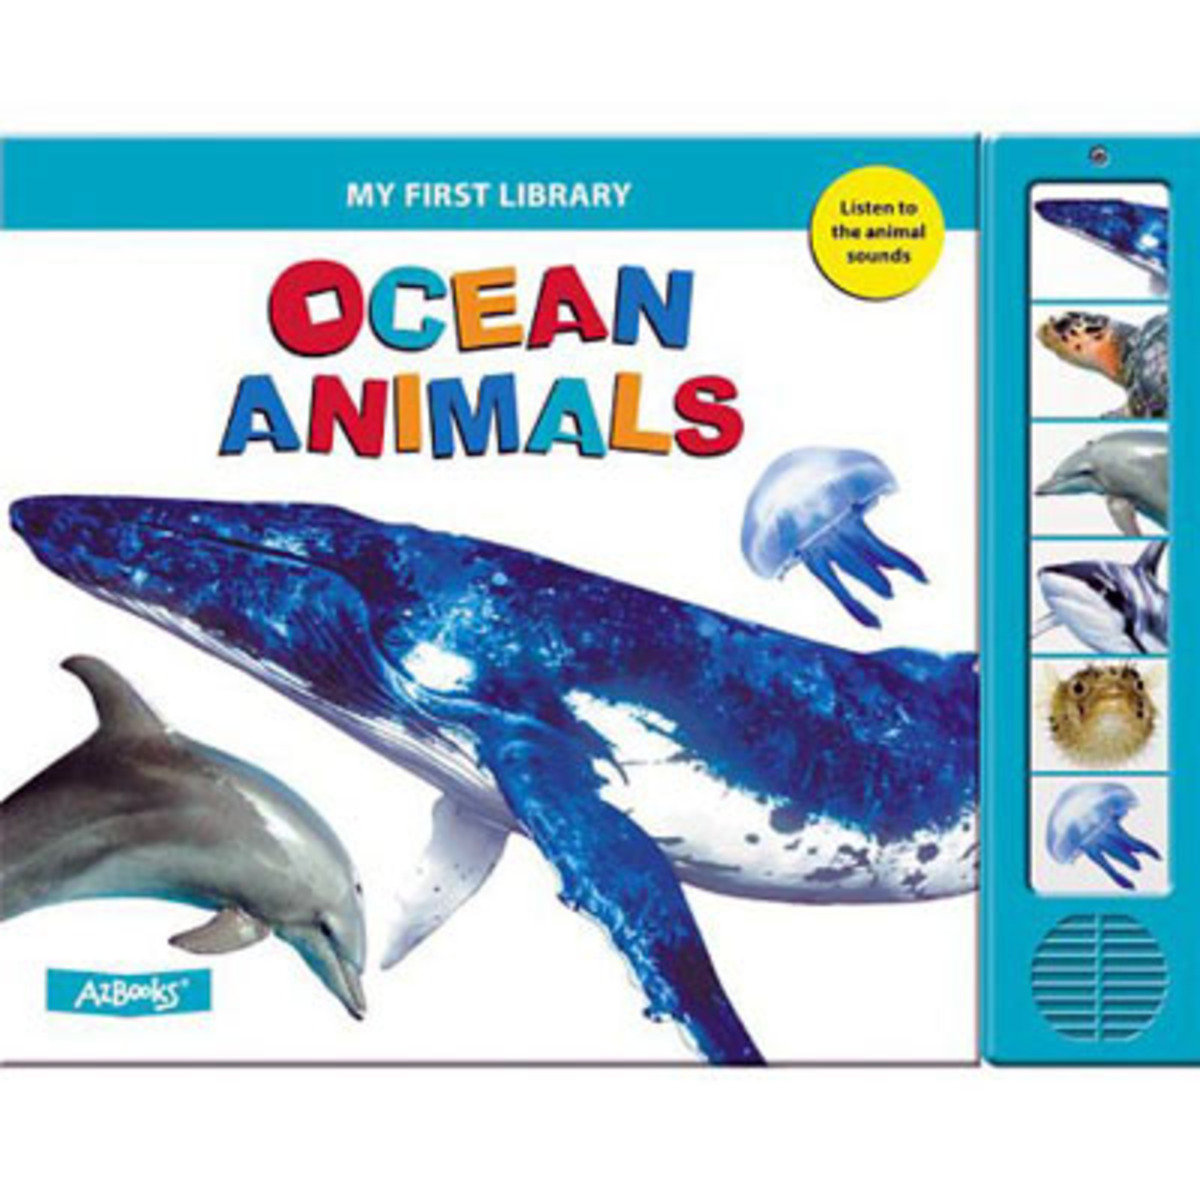 Ocean Animals (My First Library) 9781618891198